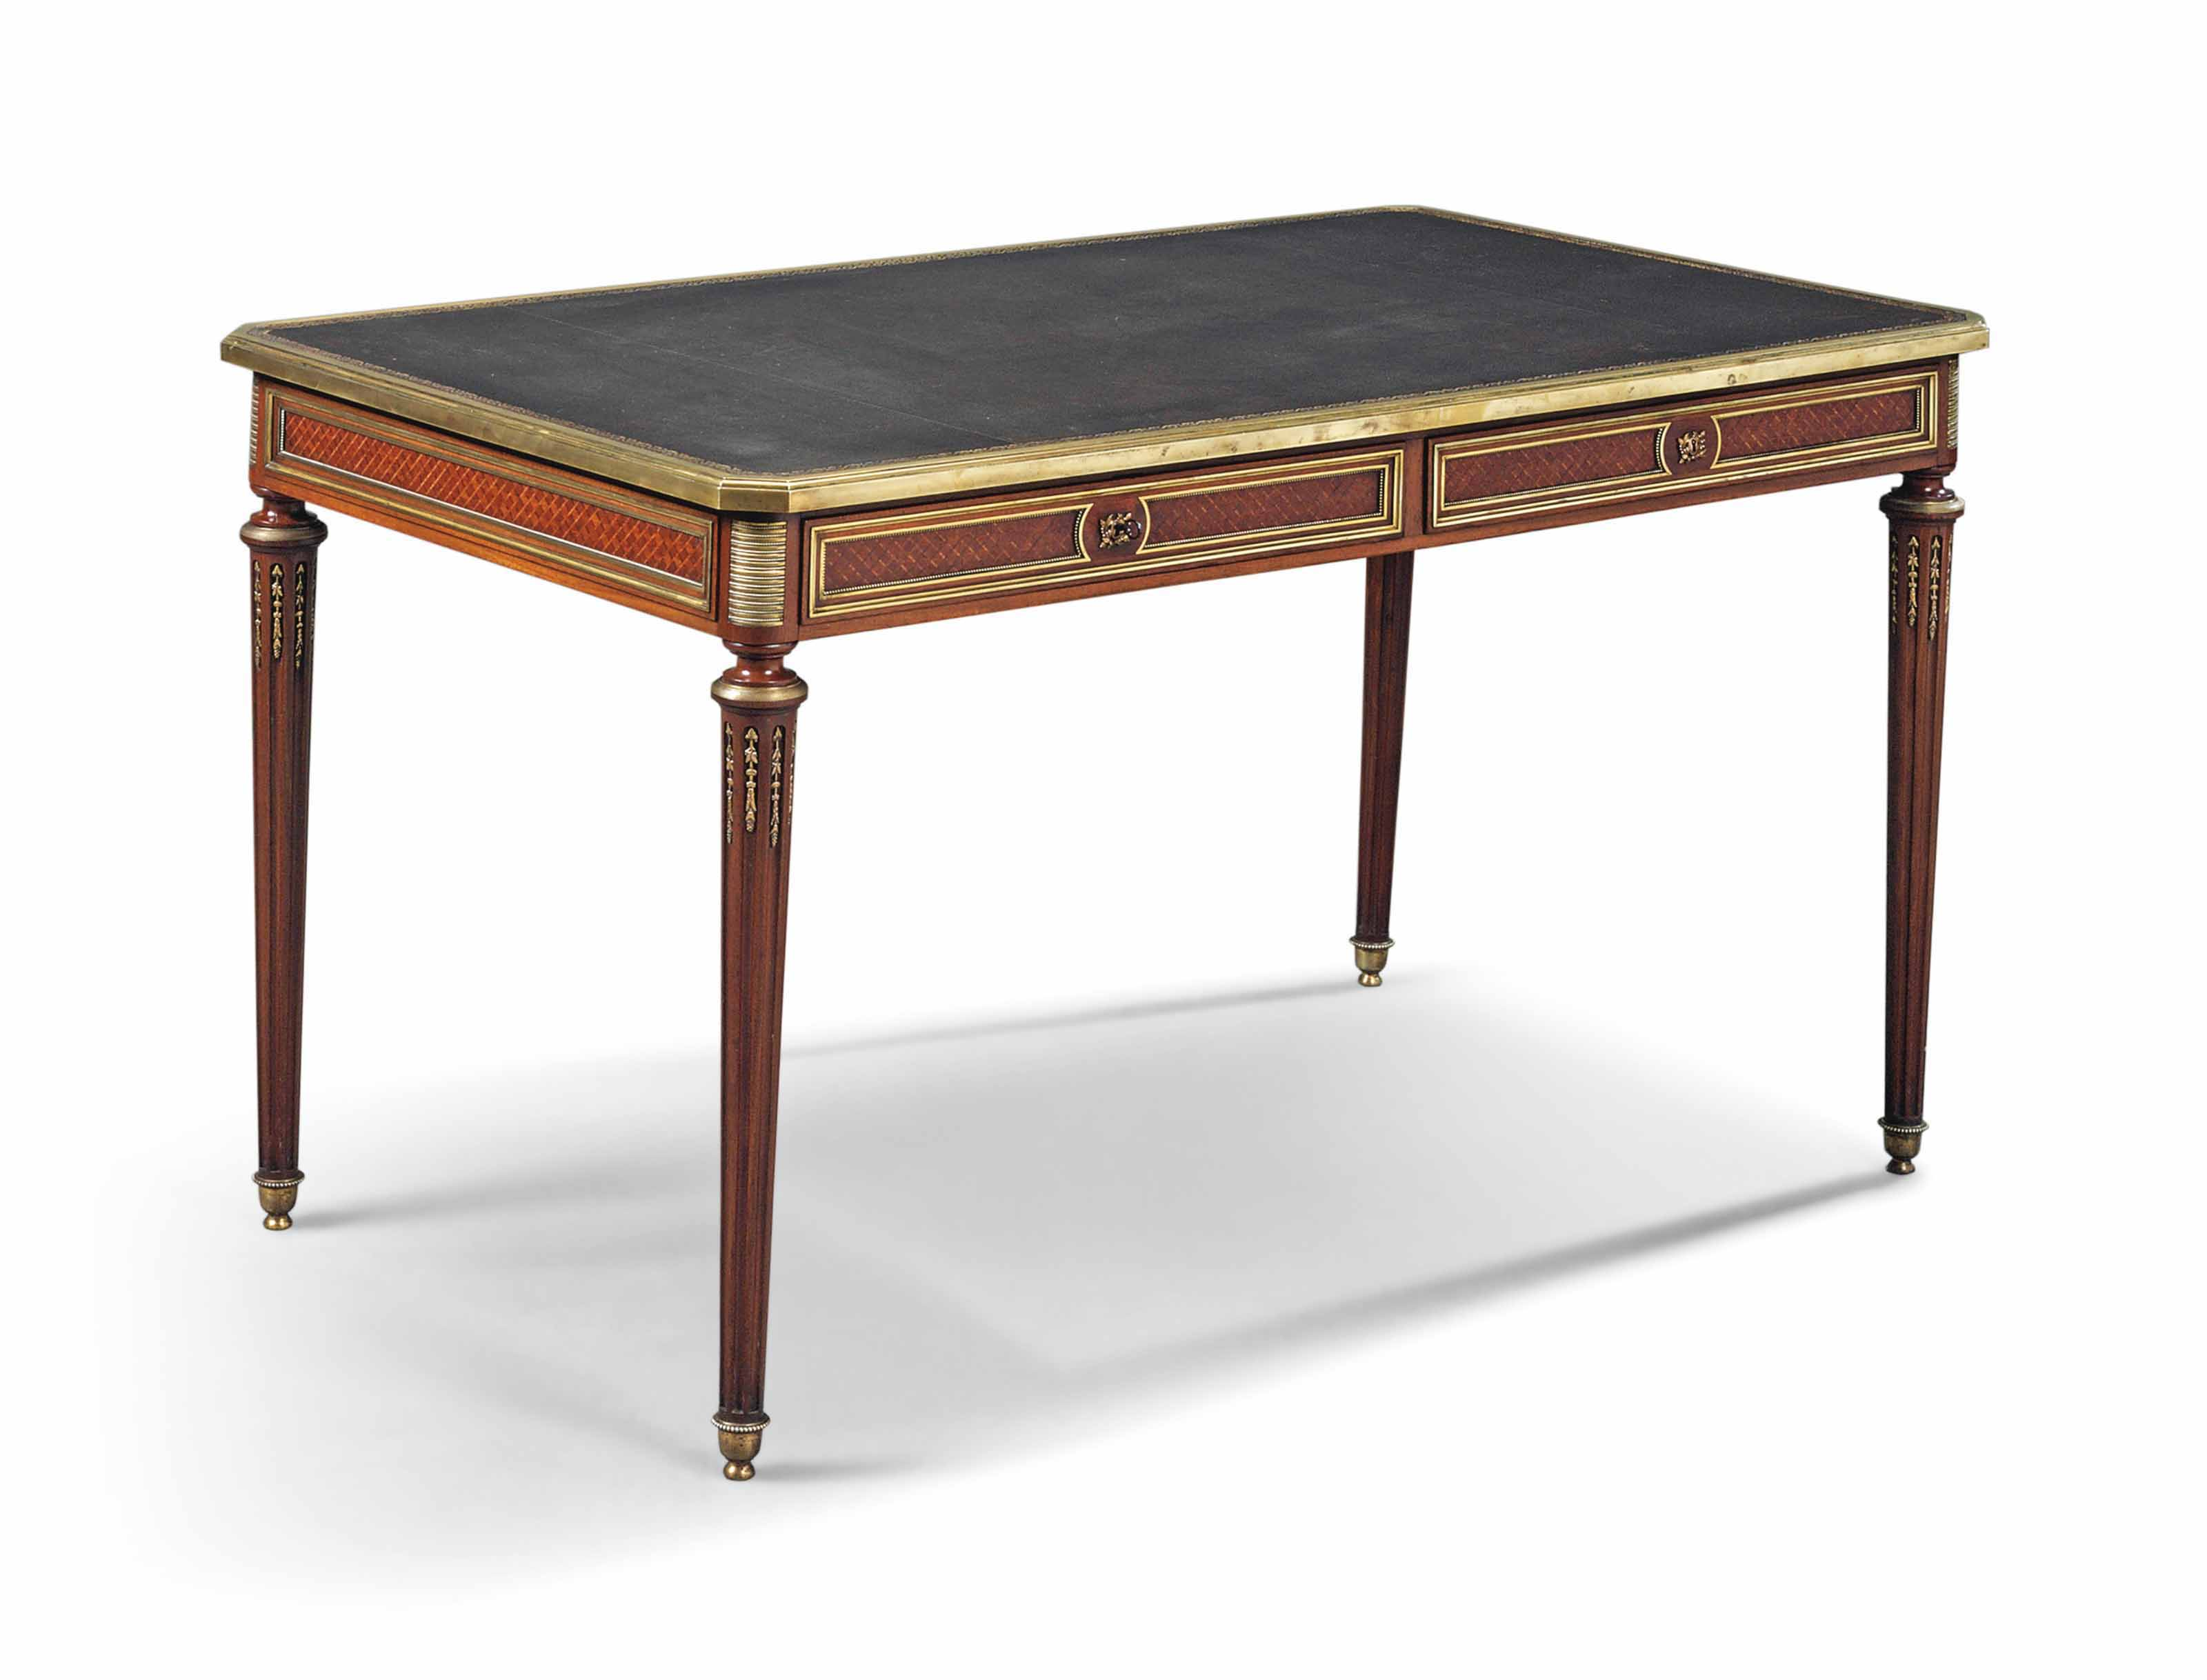 A FRENCH ORMOLU-MOUNTED MAHOGANY, TULIPWOOD AND PARQUETRY BUREAU PLAT